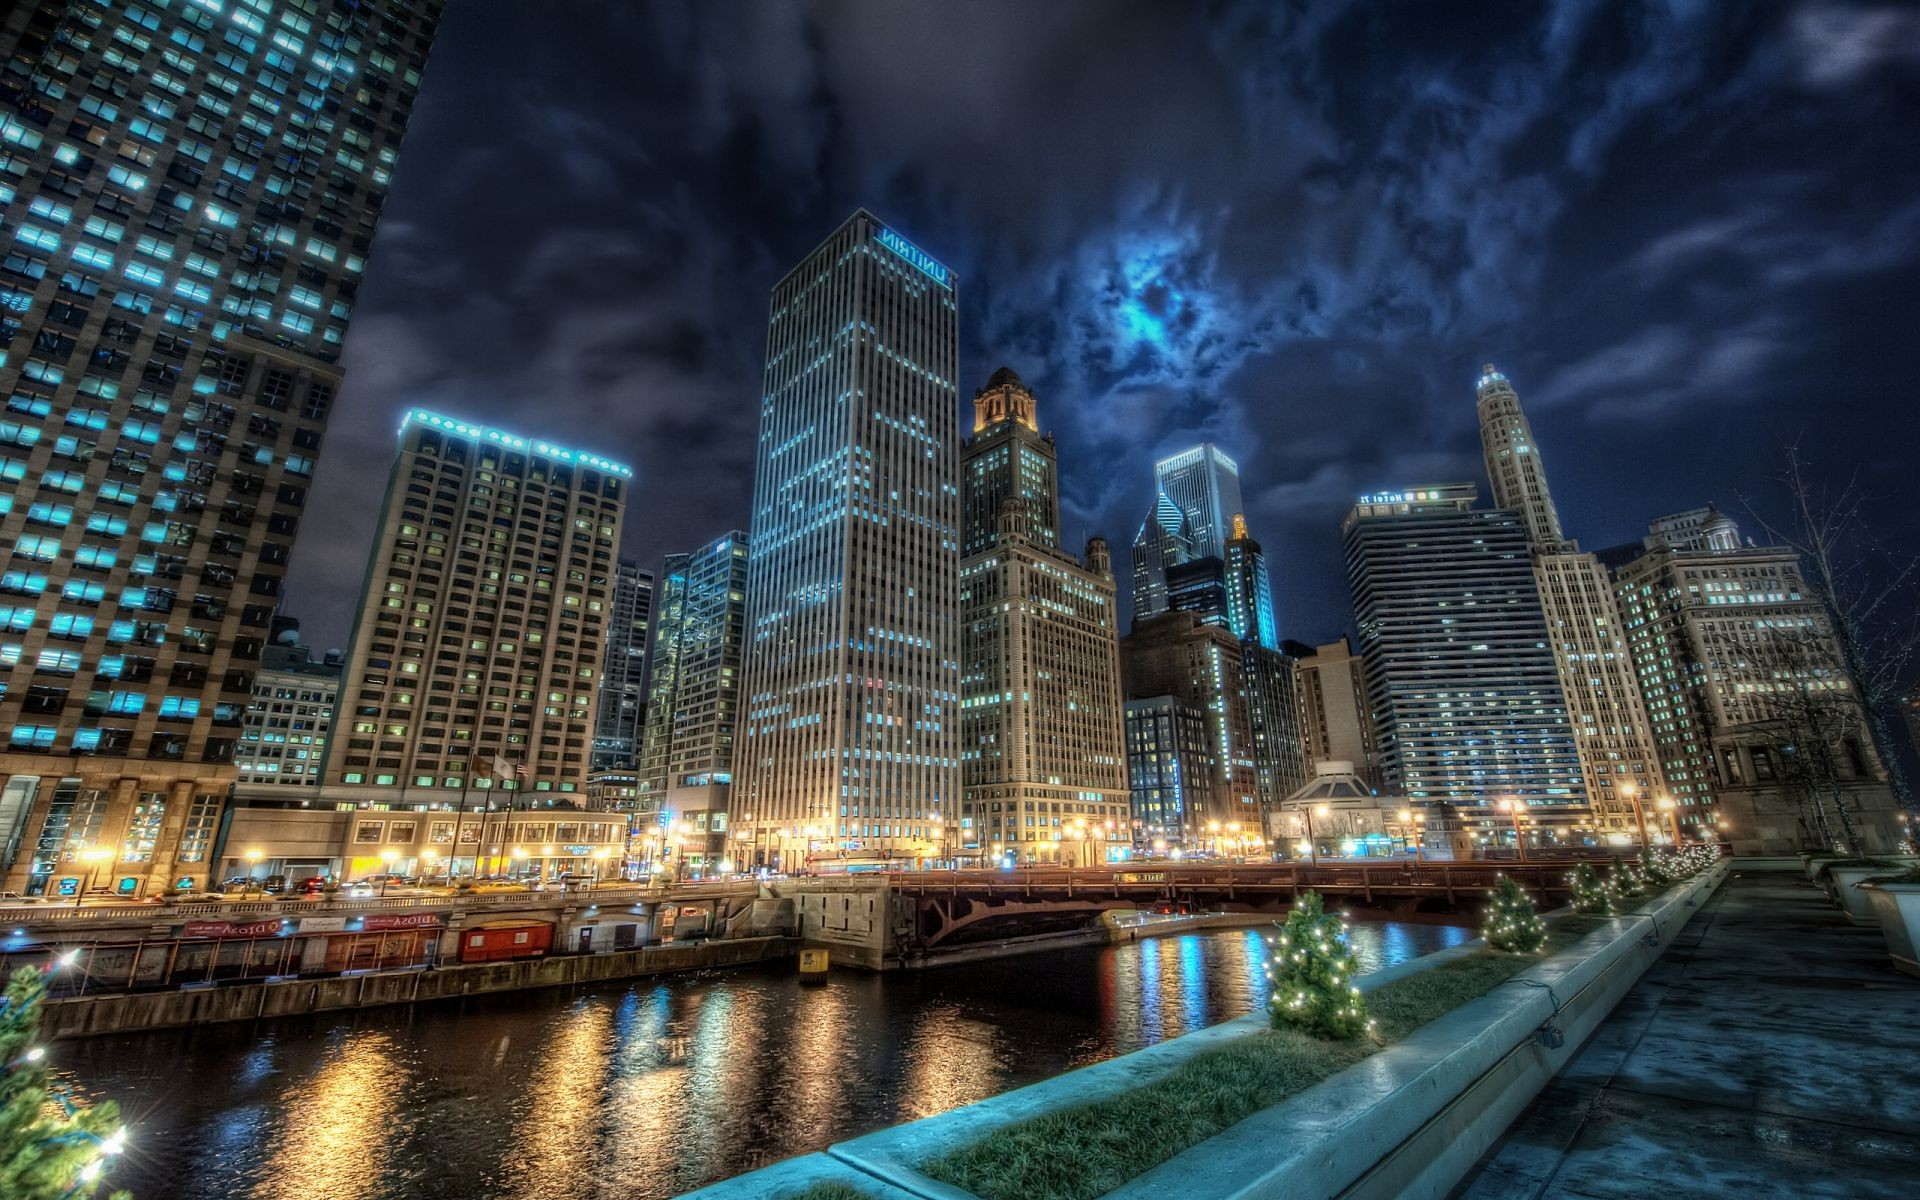 Anime Romance Wallpaper Water Reflection Night Lights Channel Chicago Chicago City